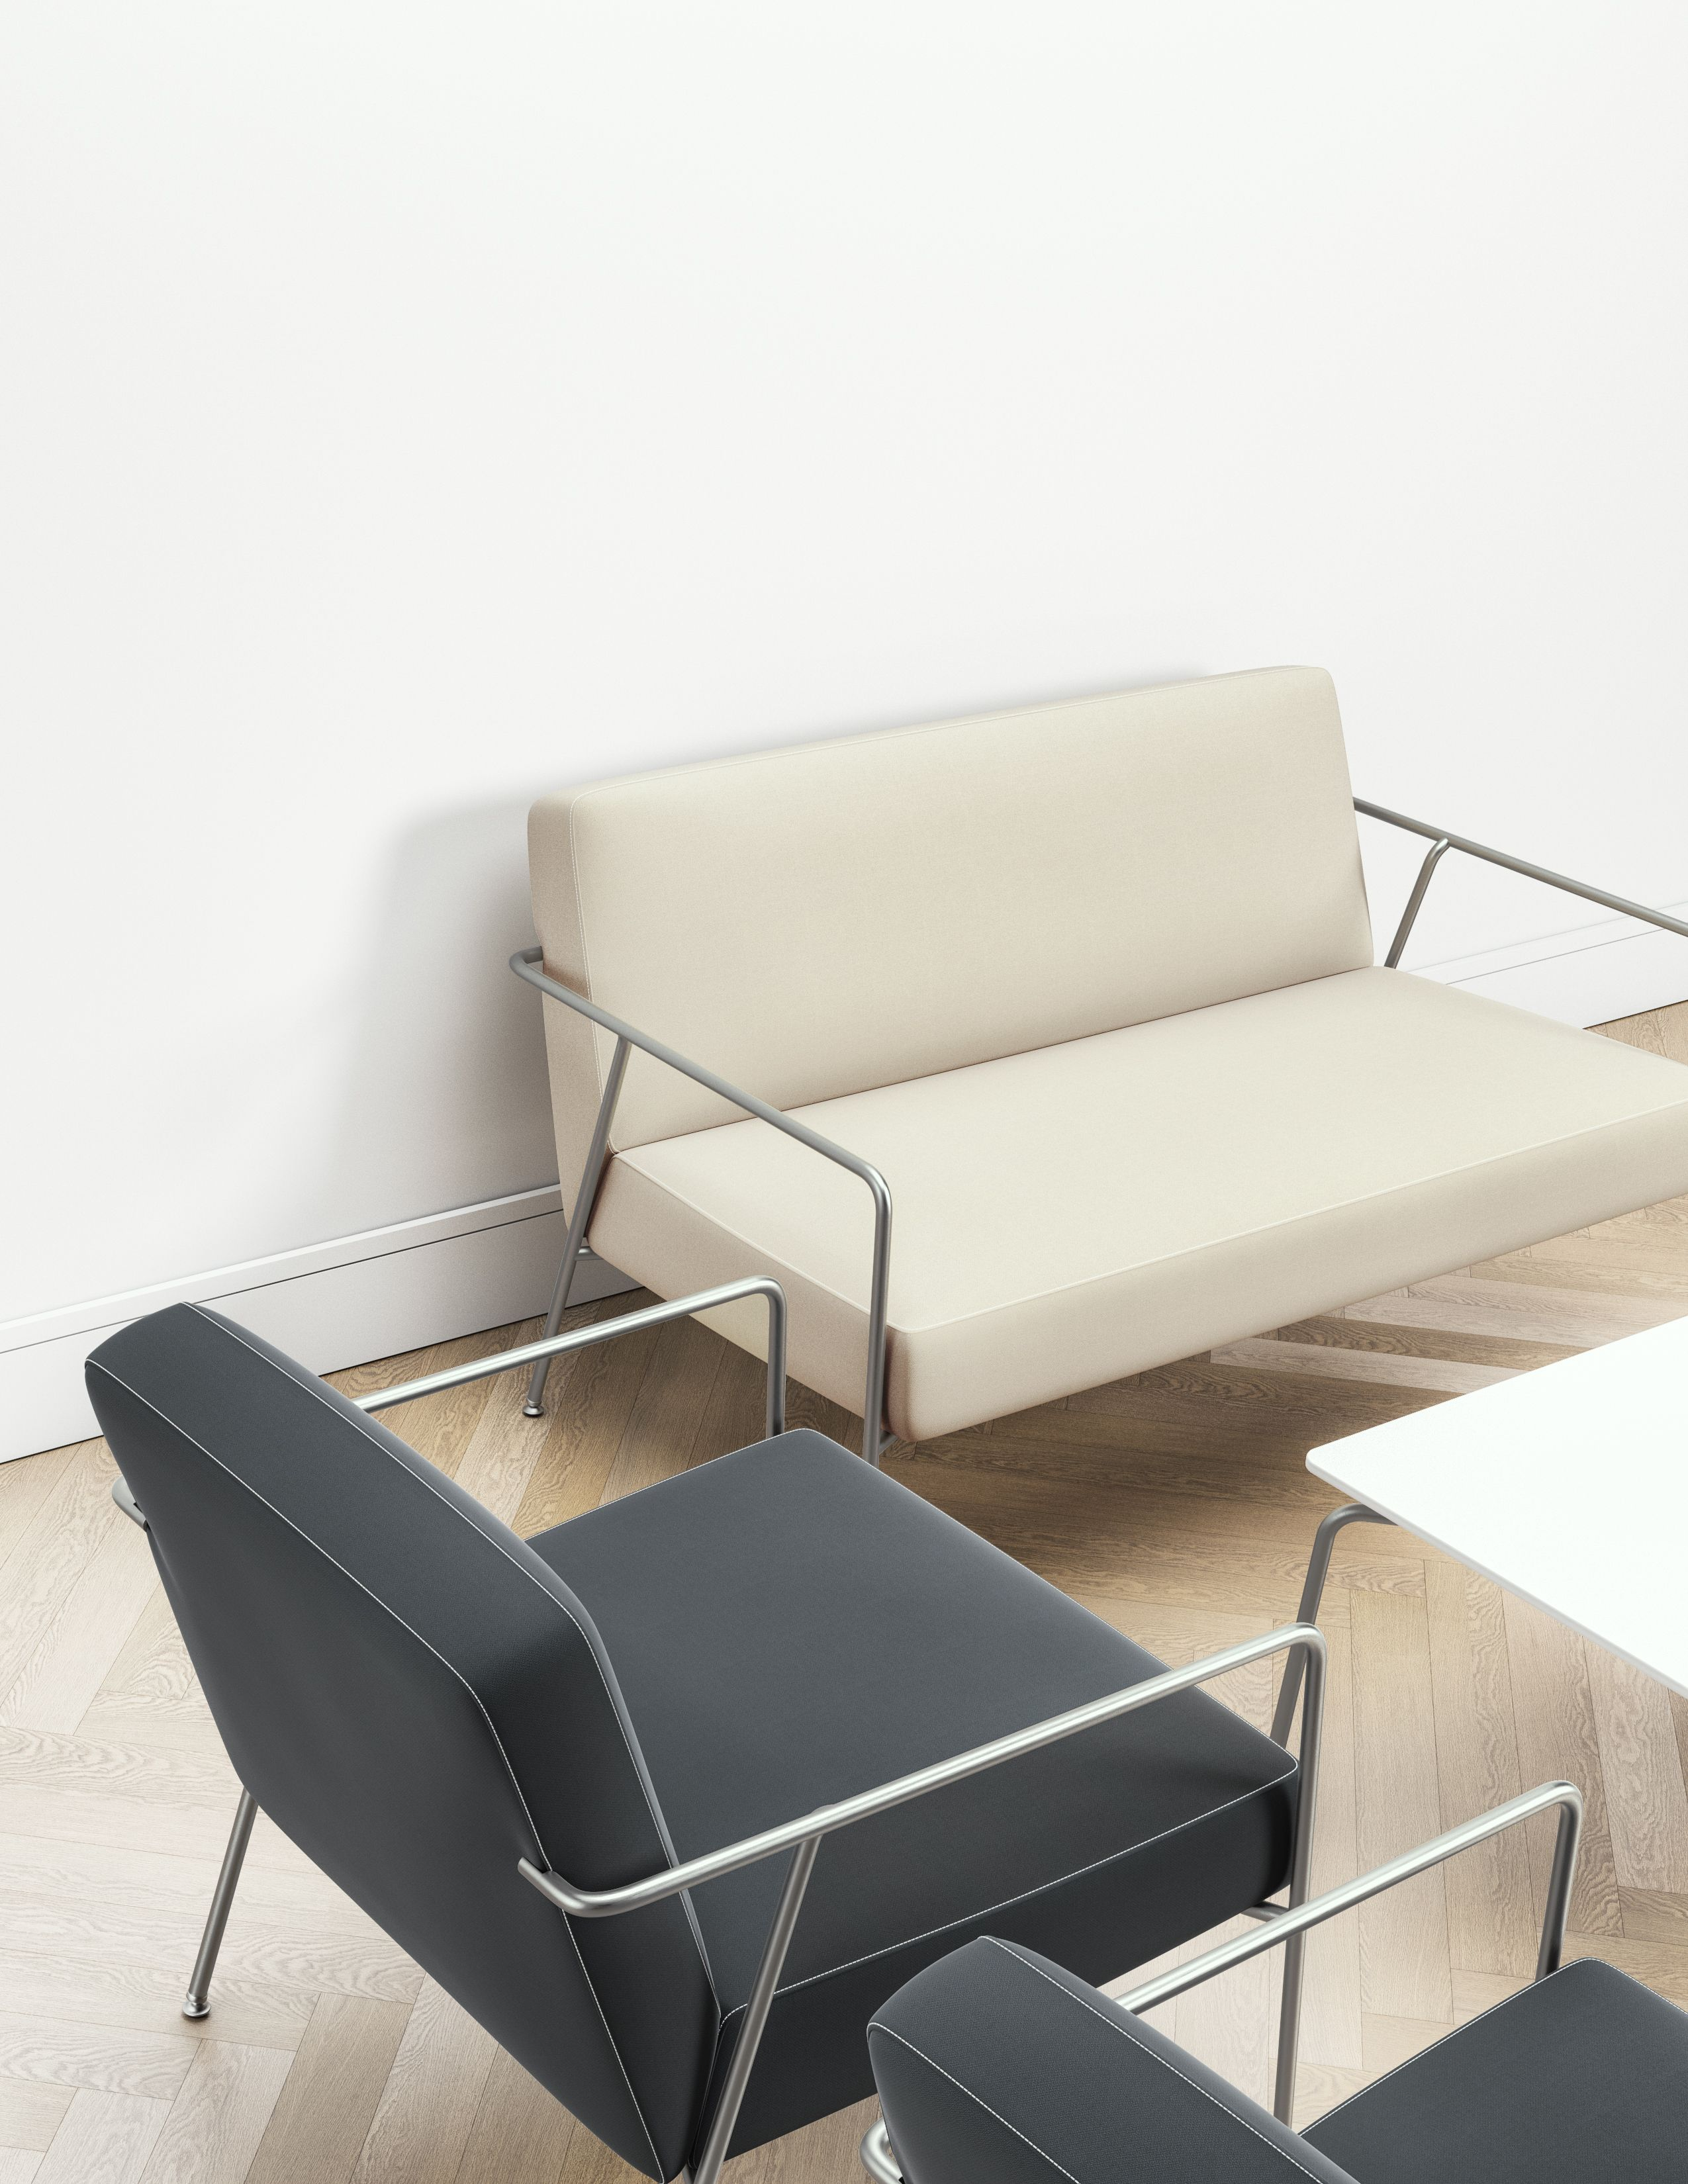 Valeri Seating Chair Furniture Seating